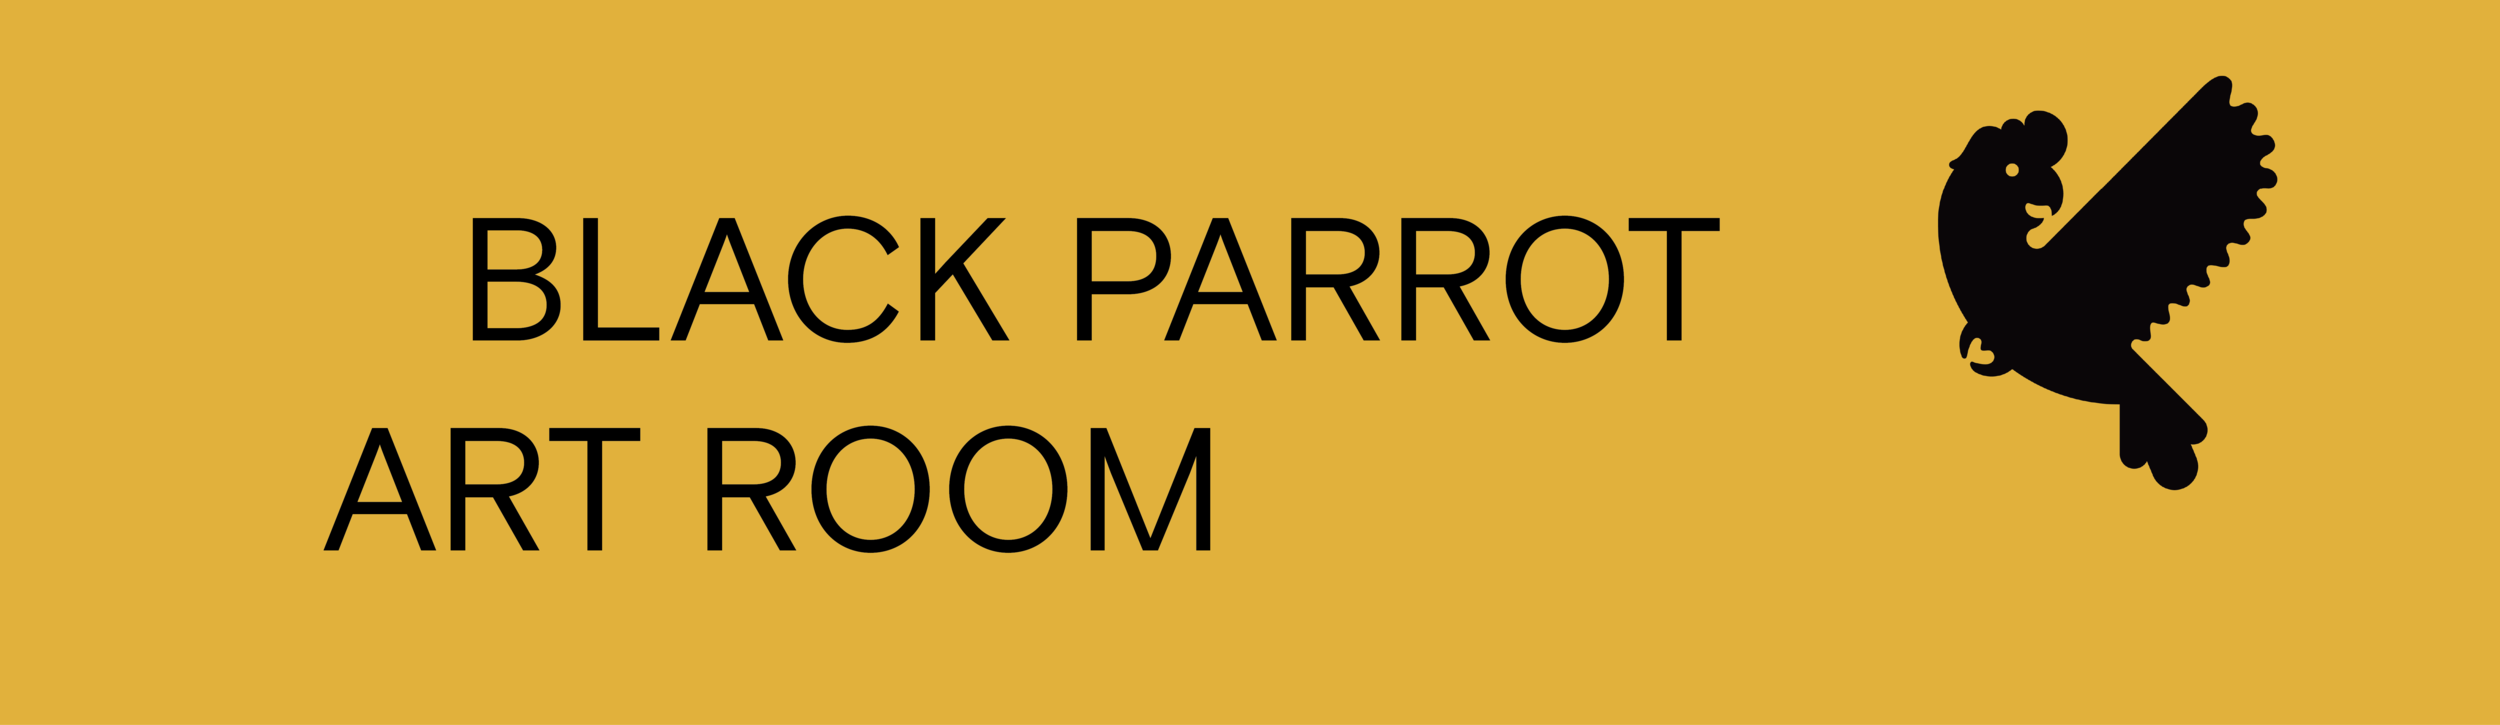 Black Parrot Art Room